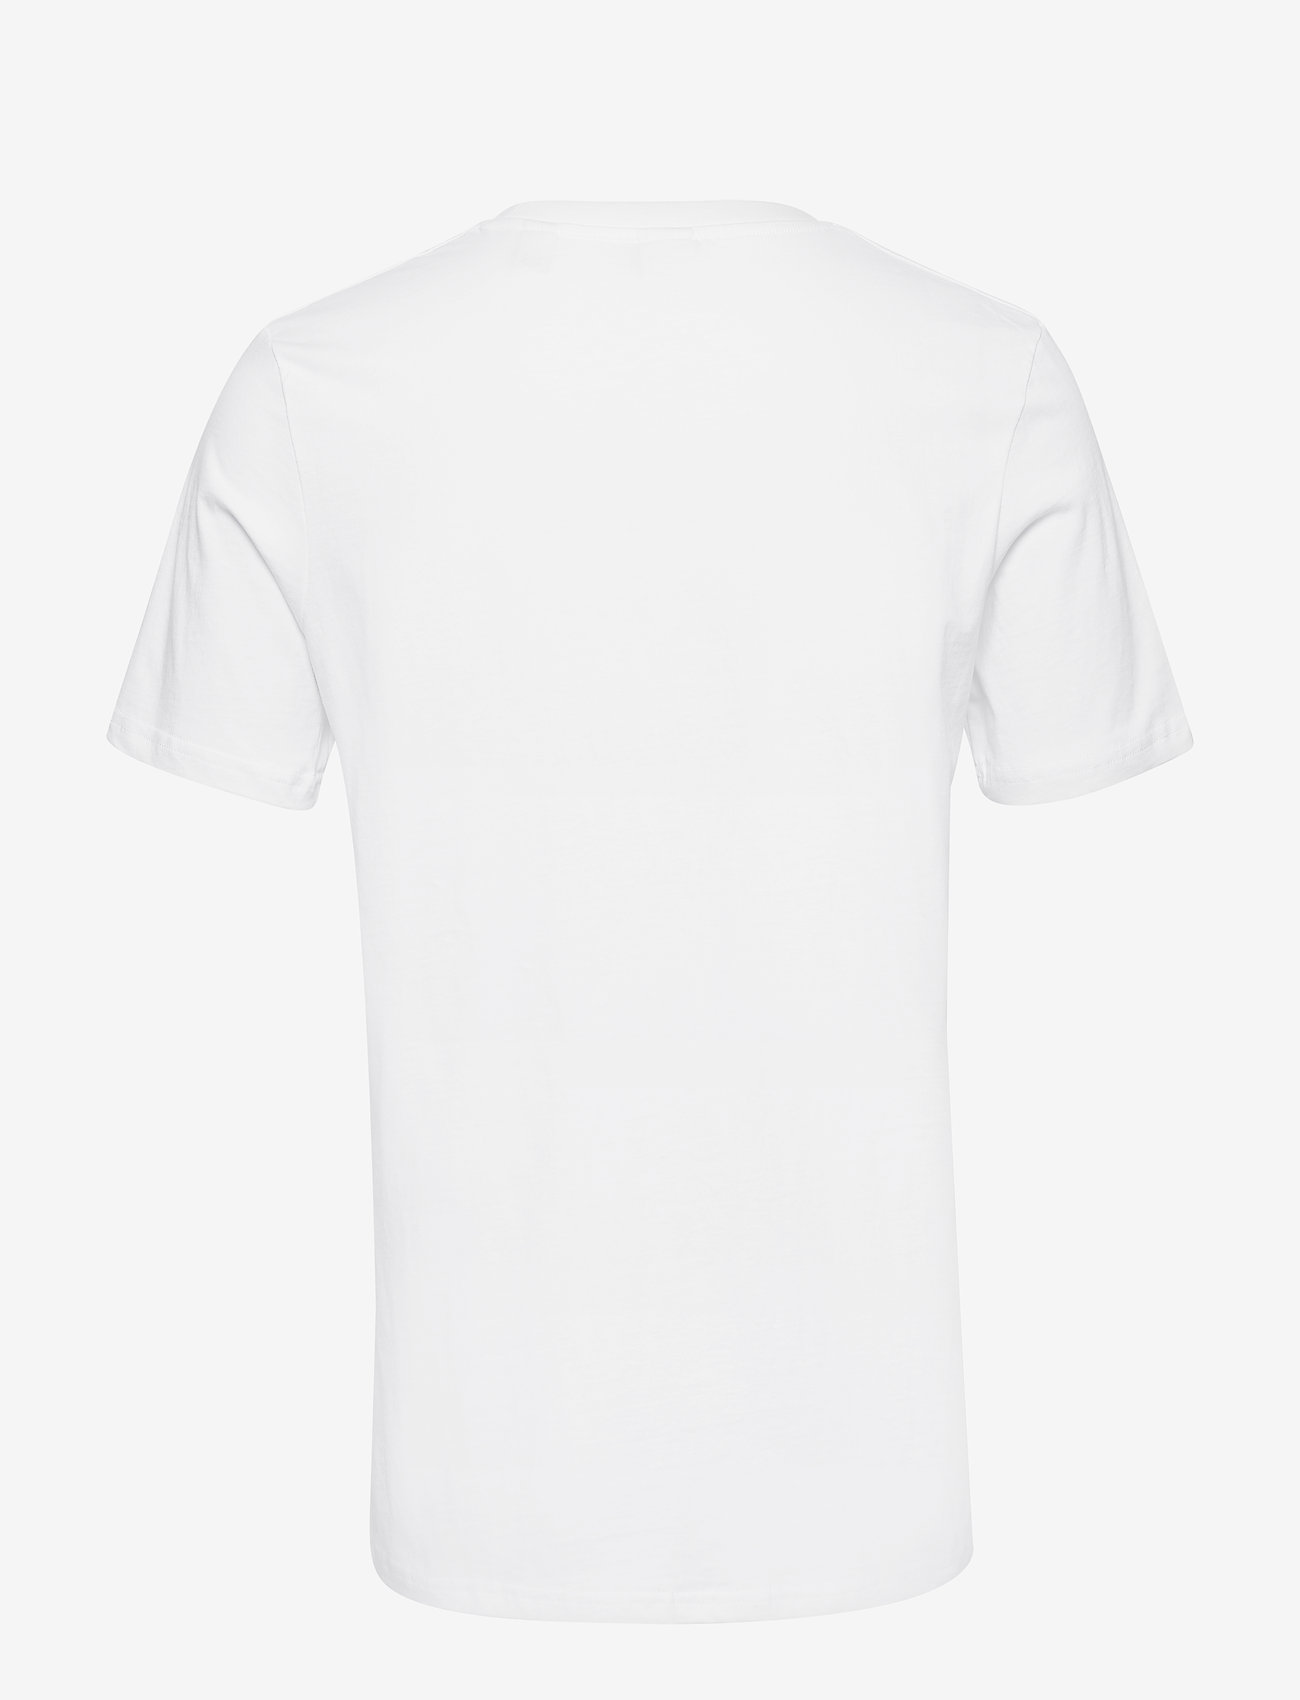 Scotch & Soda - Cotton tee with wider neck rib - t-shirts basiques - white - 1